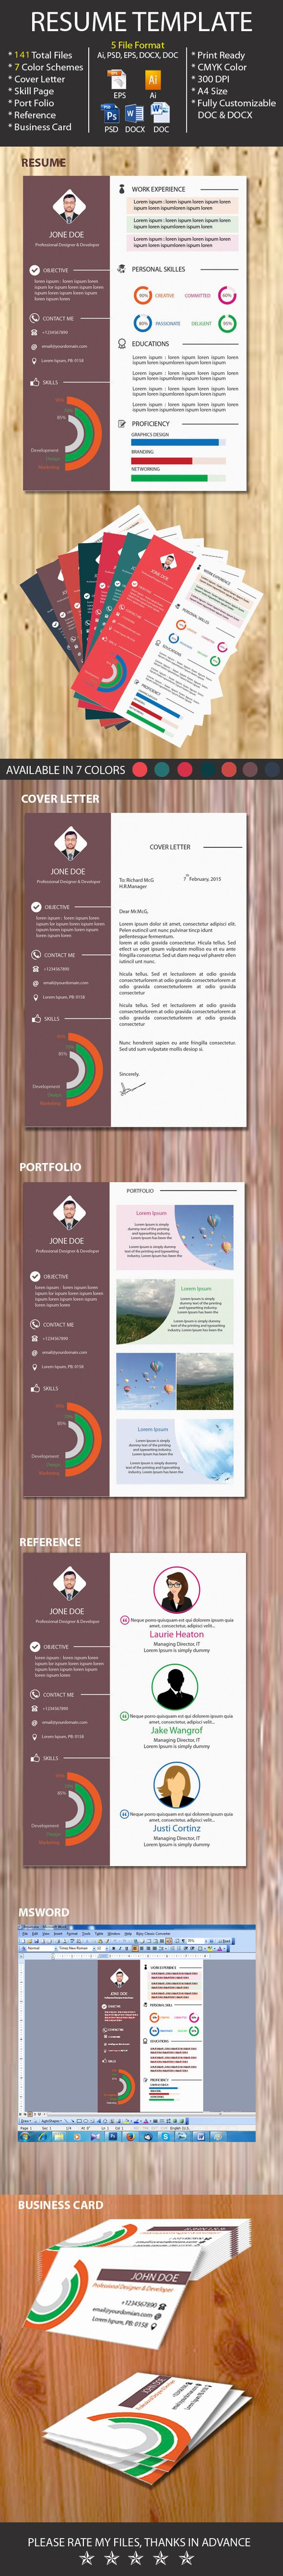 Alo CV, A complete Resume Solution - Clean Resume, Retail Resume, Resume engineer, Beautiful Resume, Visual Resume, Basic Resume, Cool Resume, Resume Folder, Resume References, Resume Website, Personal Resume, Resume Outline, Resume Picture, Cute Resume, Resume statement @creativework247